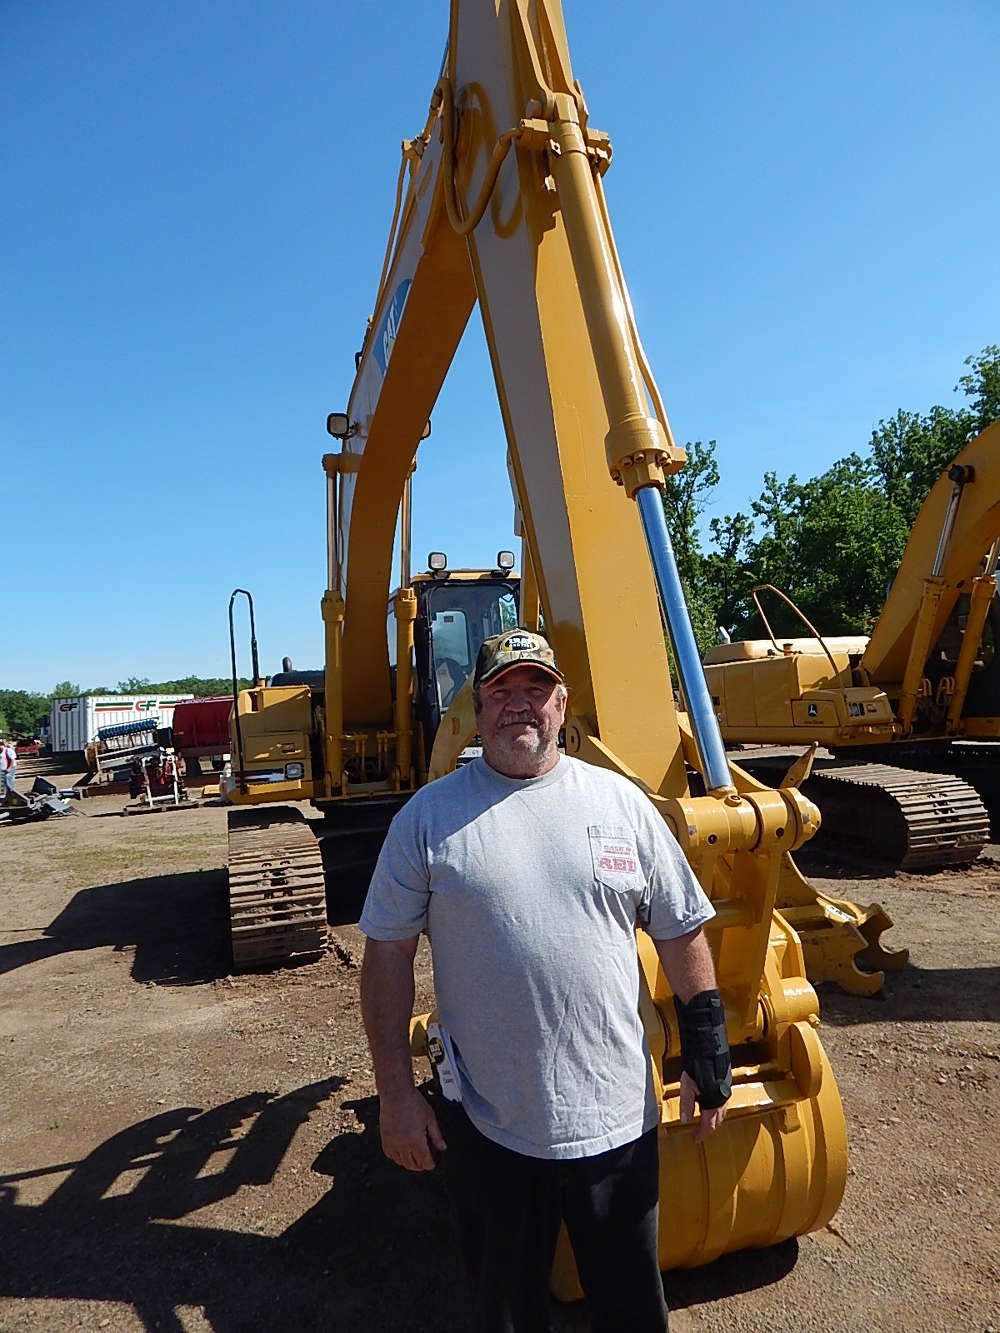 Richard Dumprope, Camp Ripley Heavy Equipment, Brainerd, Minn., takes a look at the excavators, and said he also is looking to buy one of the portable buildings for sale.